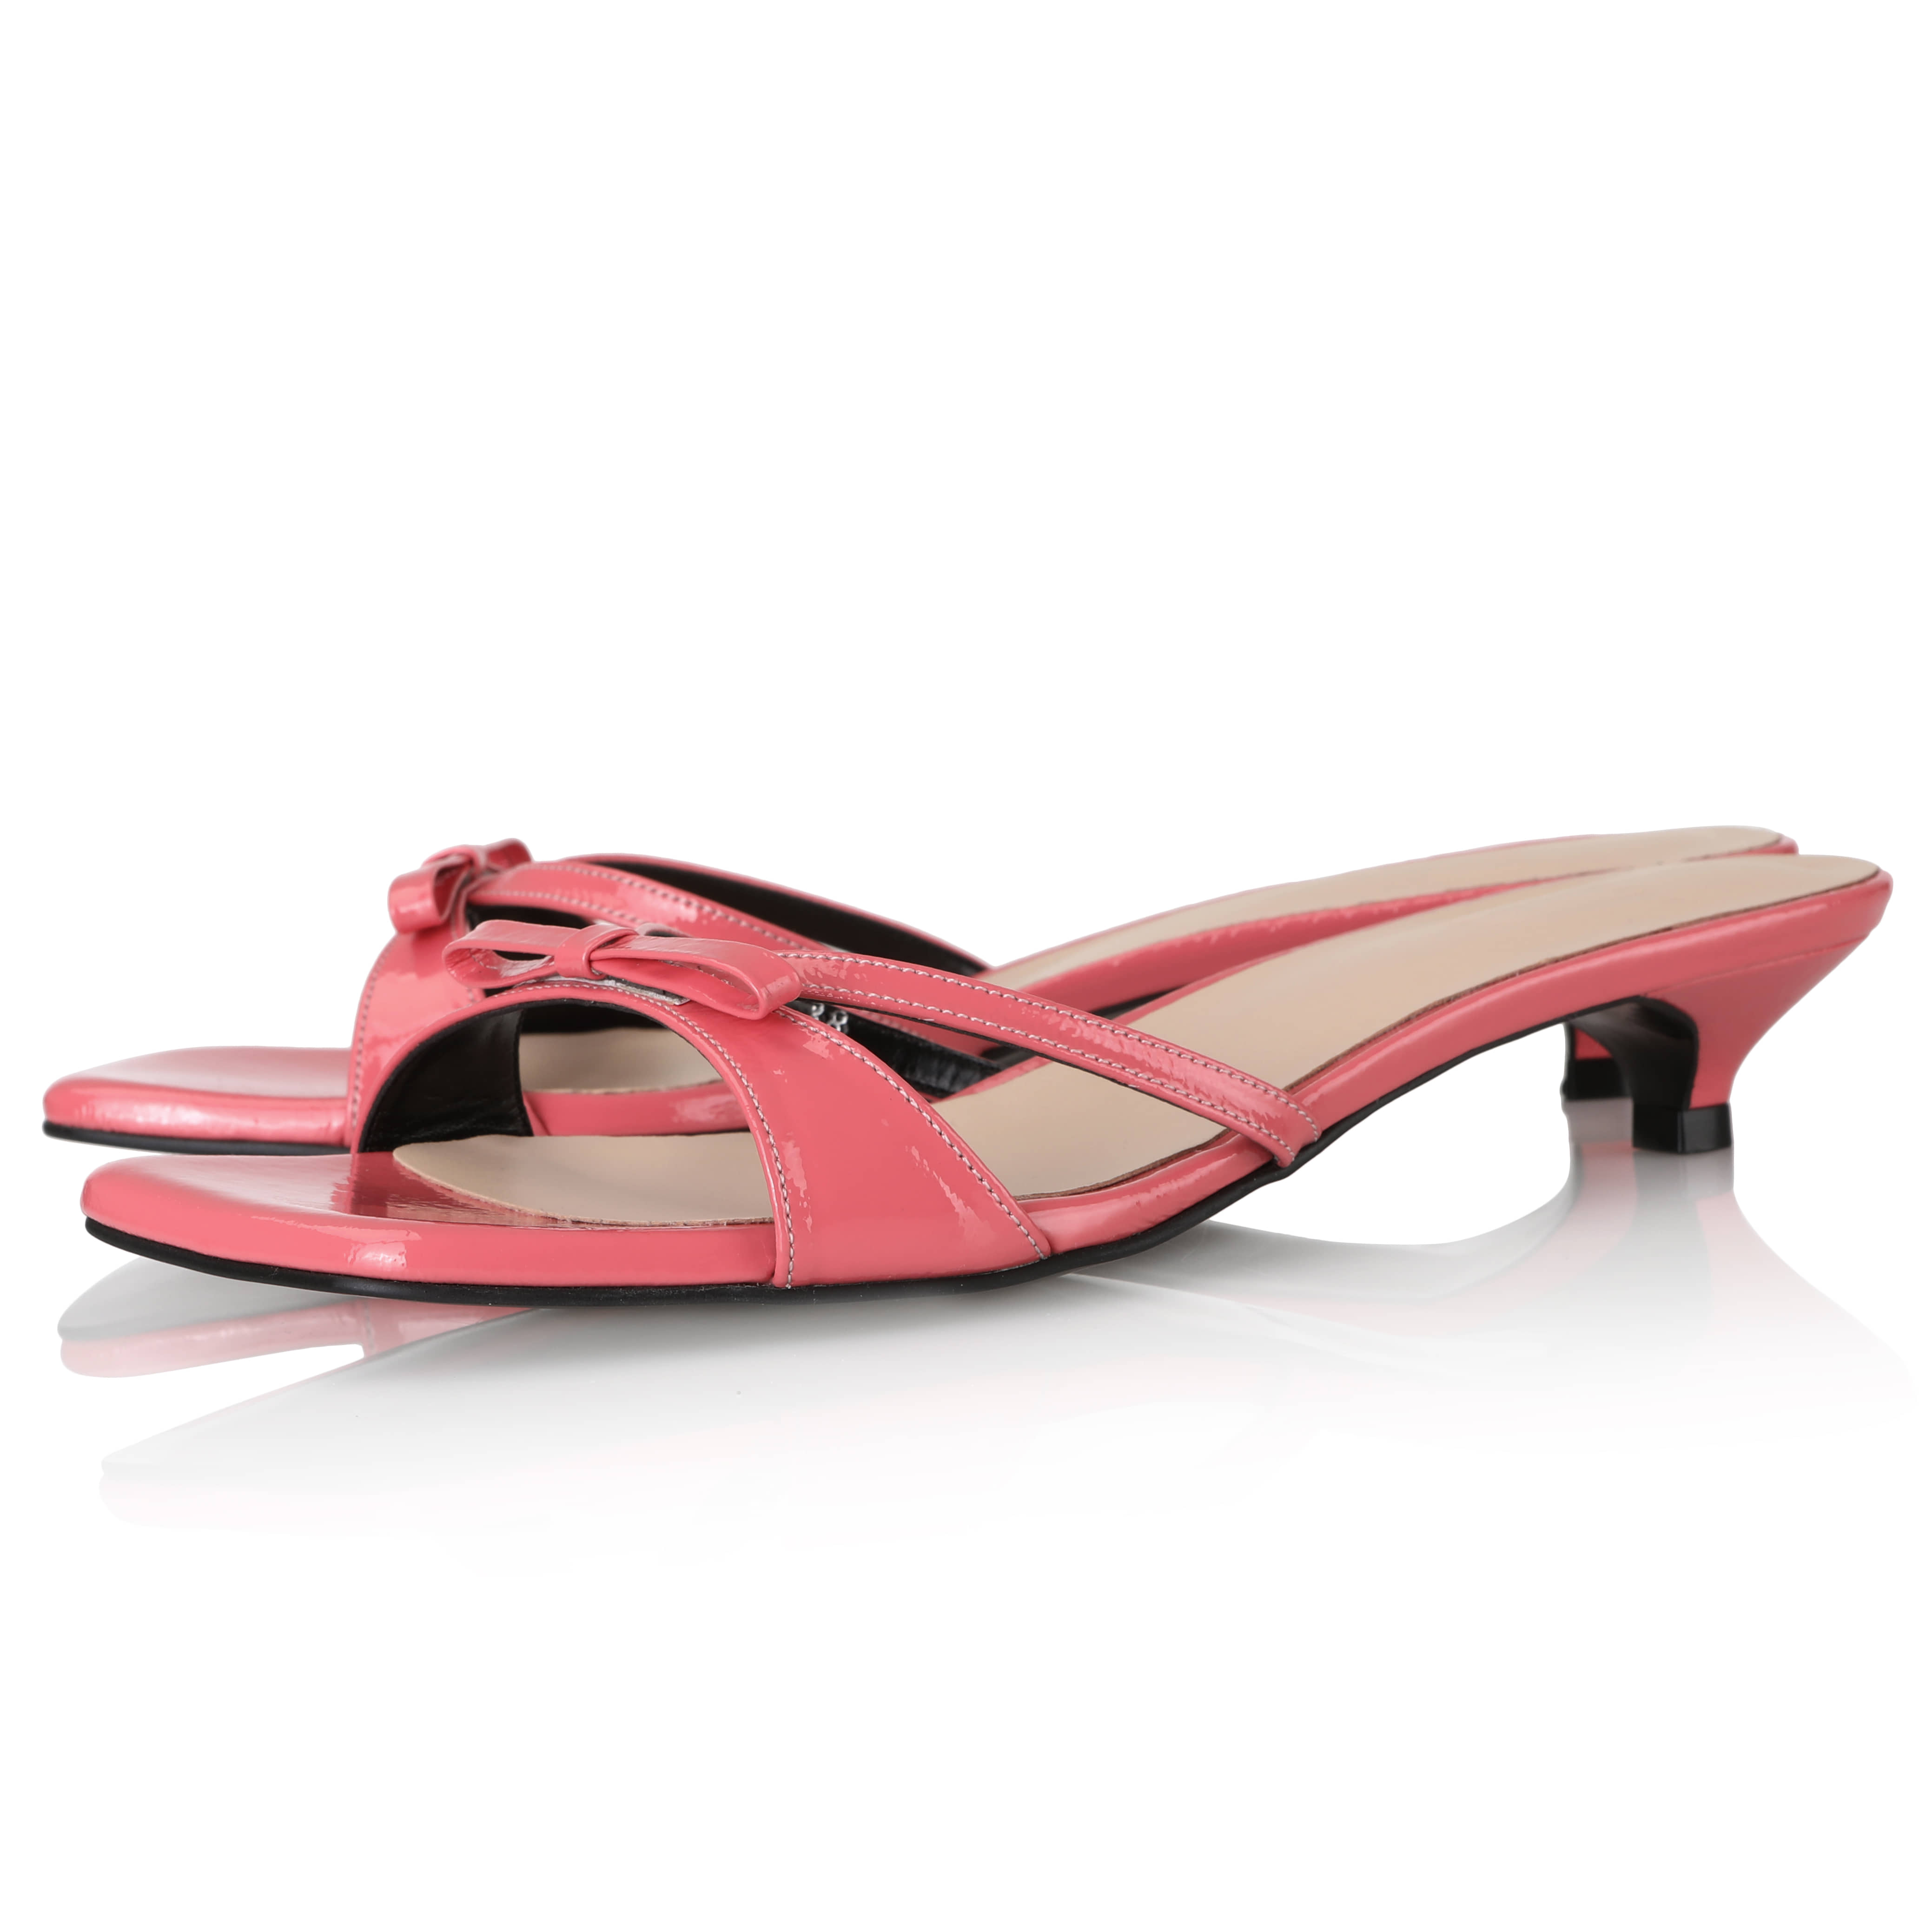 Y.01 Jane Candy Kitten Mules / YY20S-S44 / Coral Pink